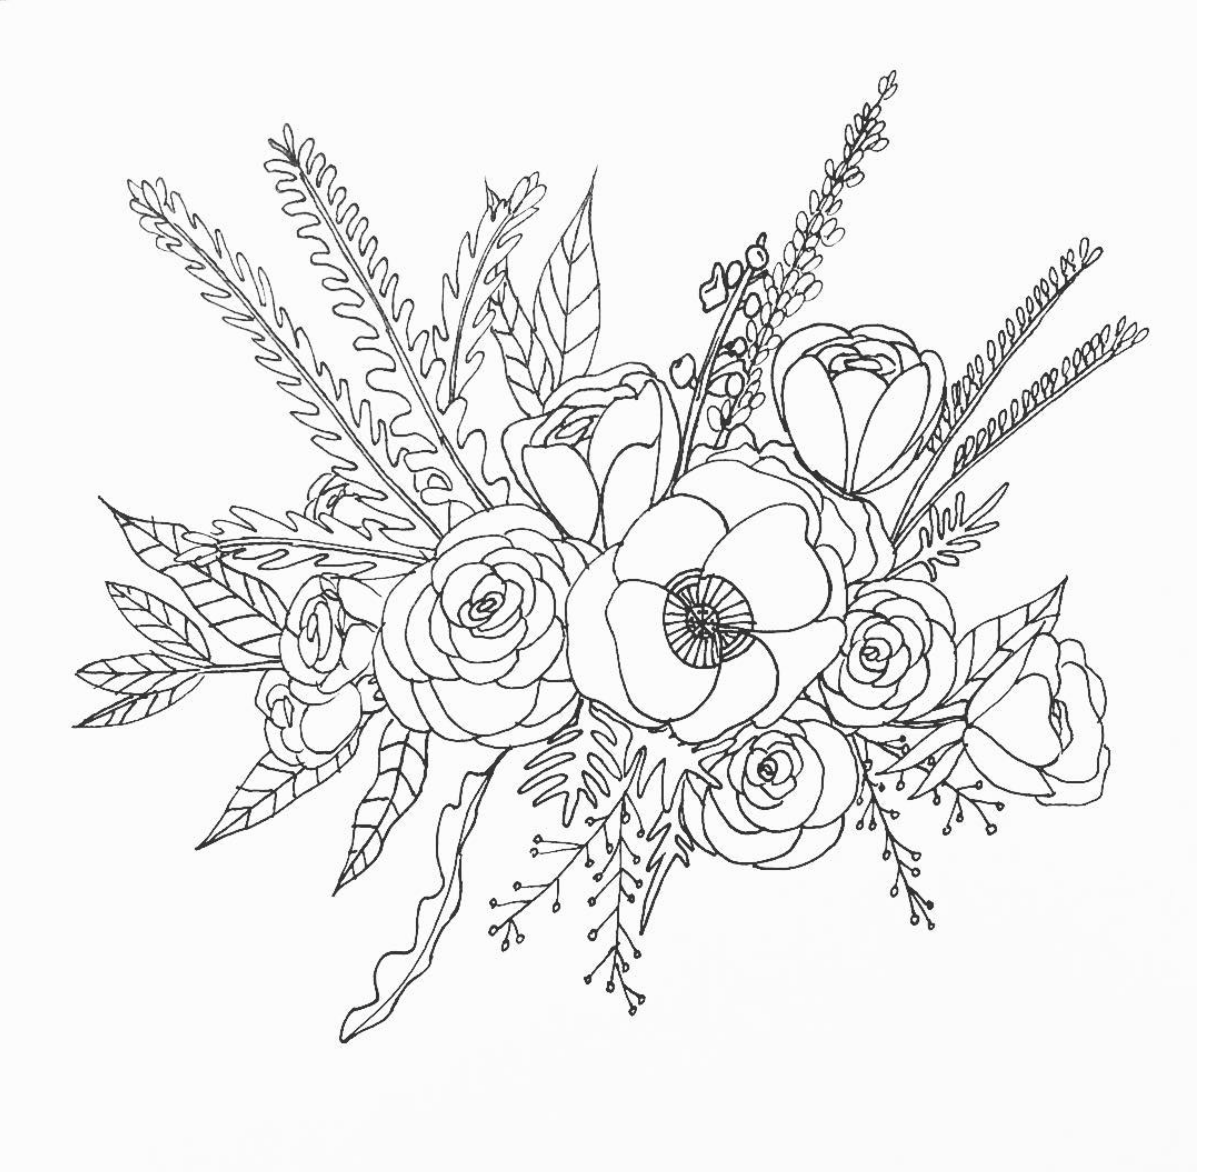 Line drawing flower illustration floral bouquet